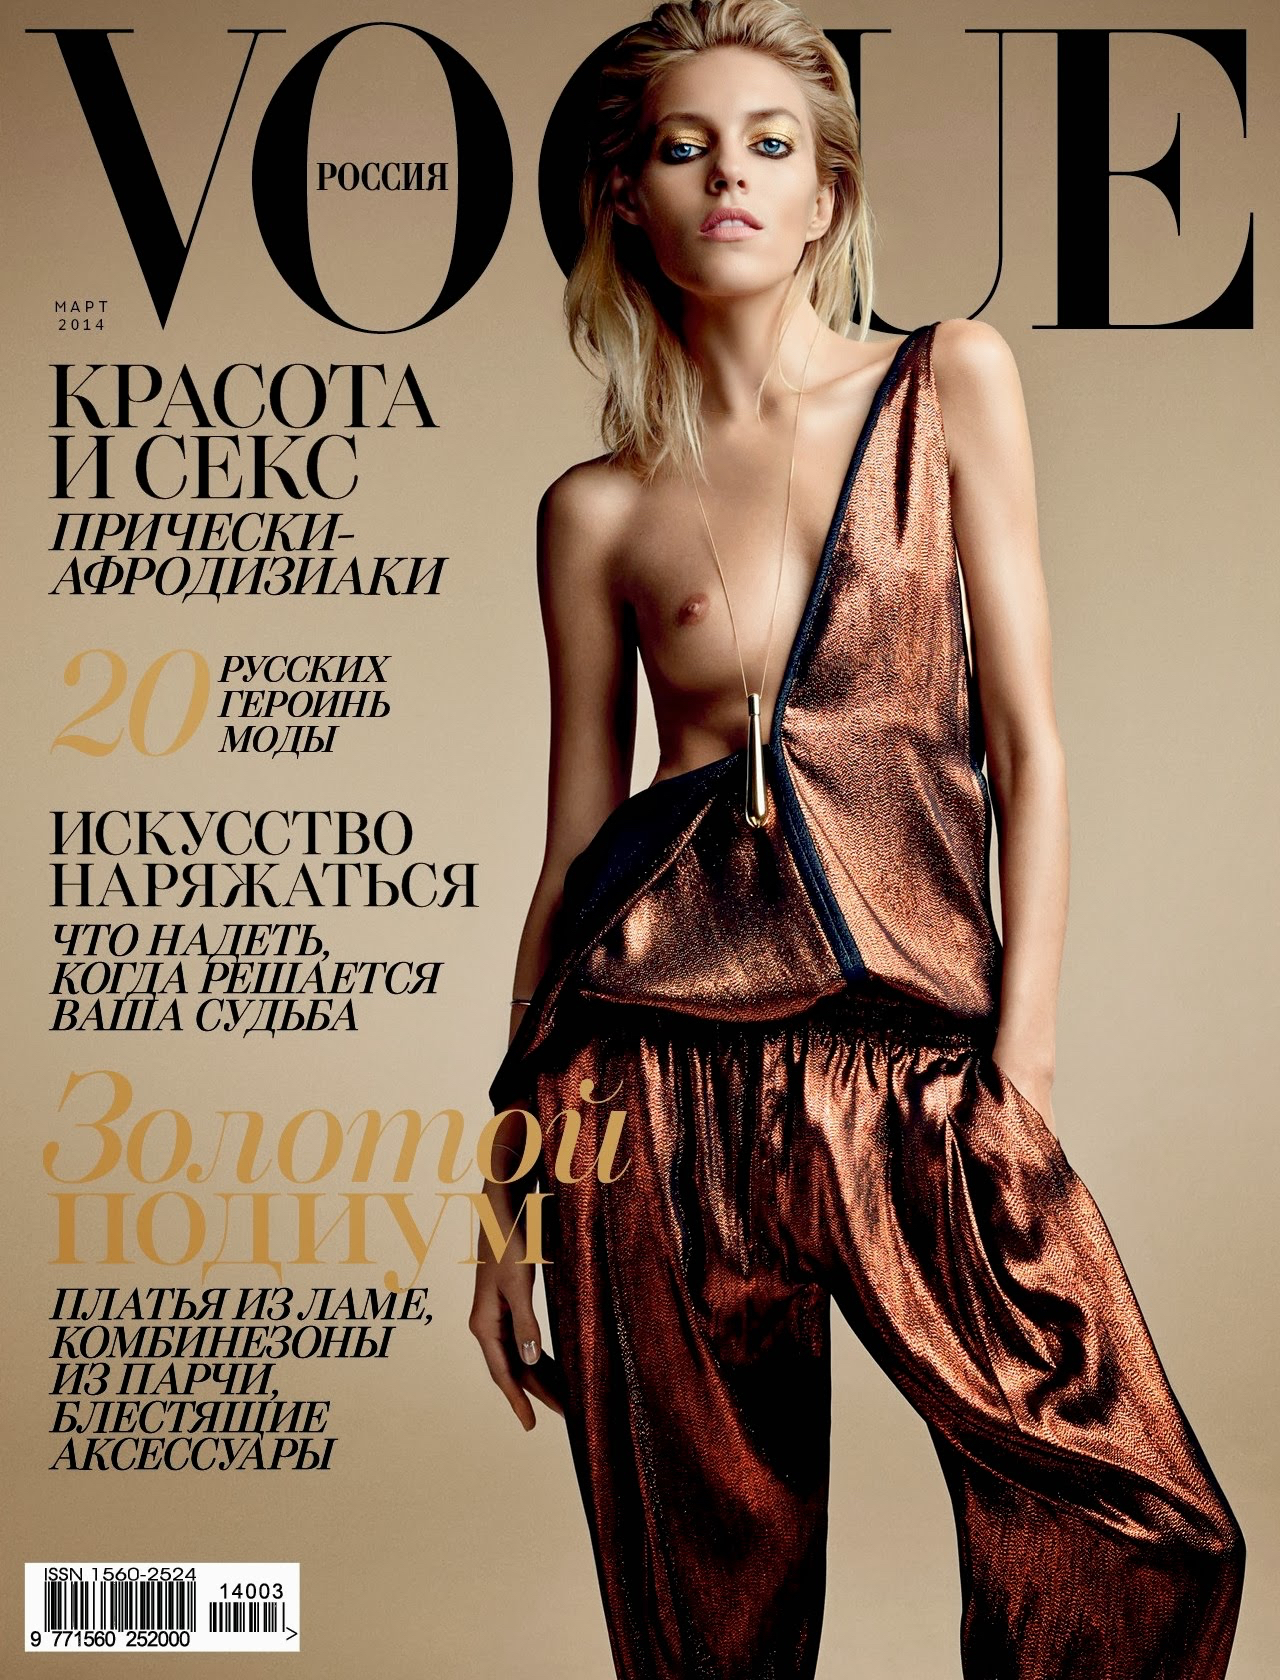 Patrick Demarchelier Vogue Russia March 2014 .jpg